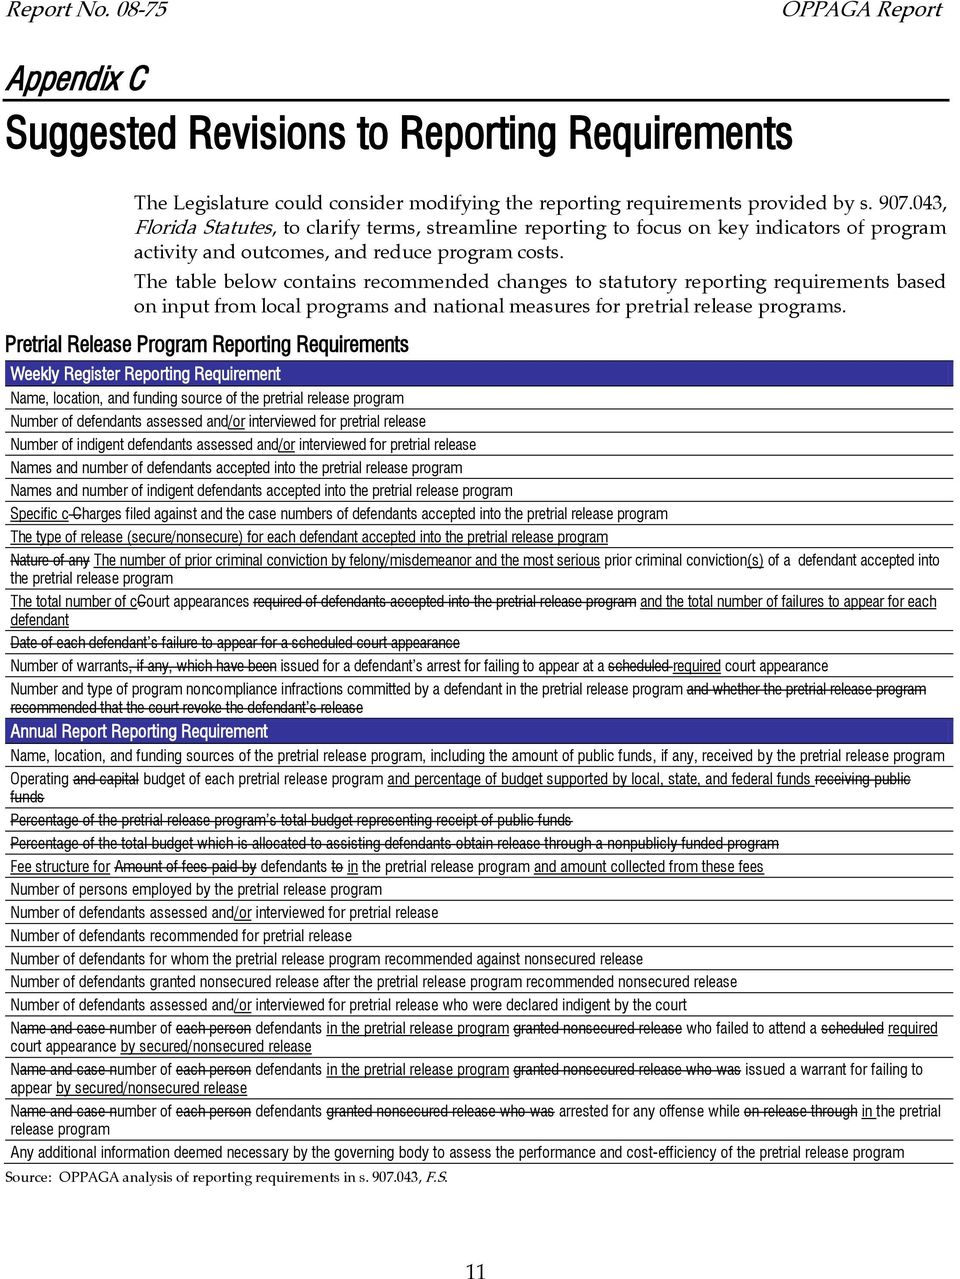 The table below contains recommended changes to statutory reporting requirements based on input from local programs and national measures for pretrial release programs.